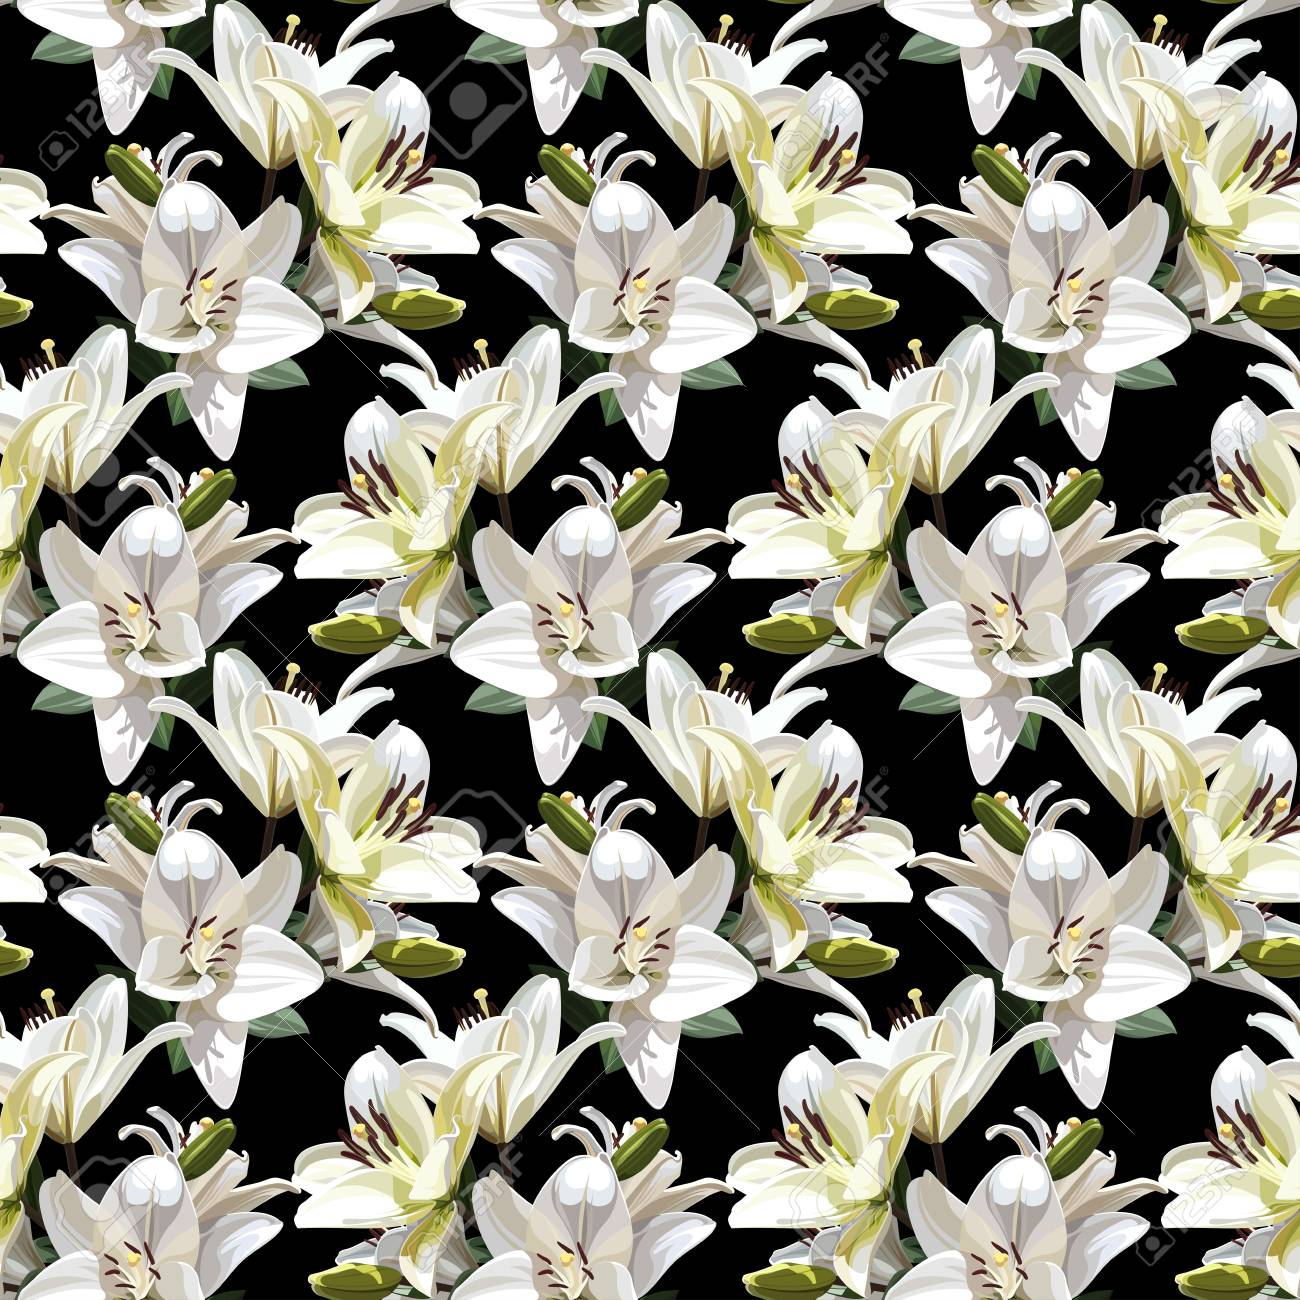 White flowers of lily madonna lily seamless floral pattern white flowers of lily madonna lily seamless floral pattern on black background izmirmasajfo